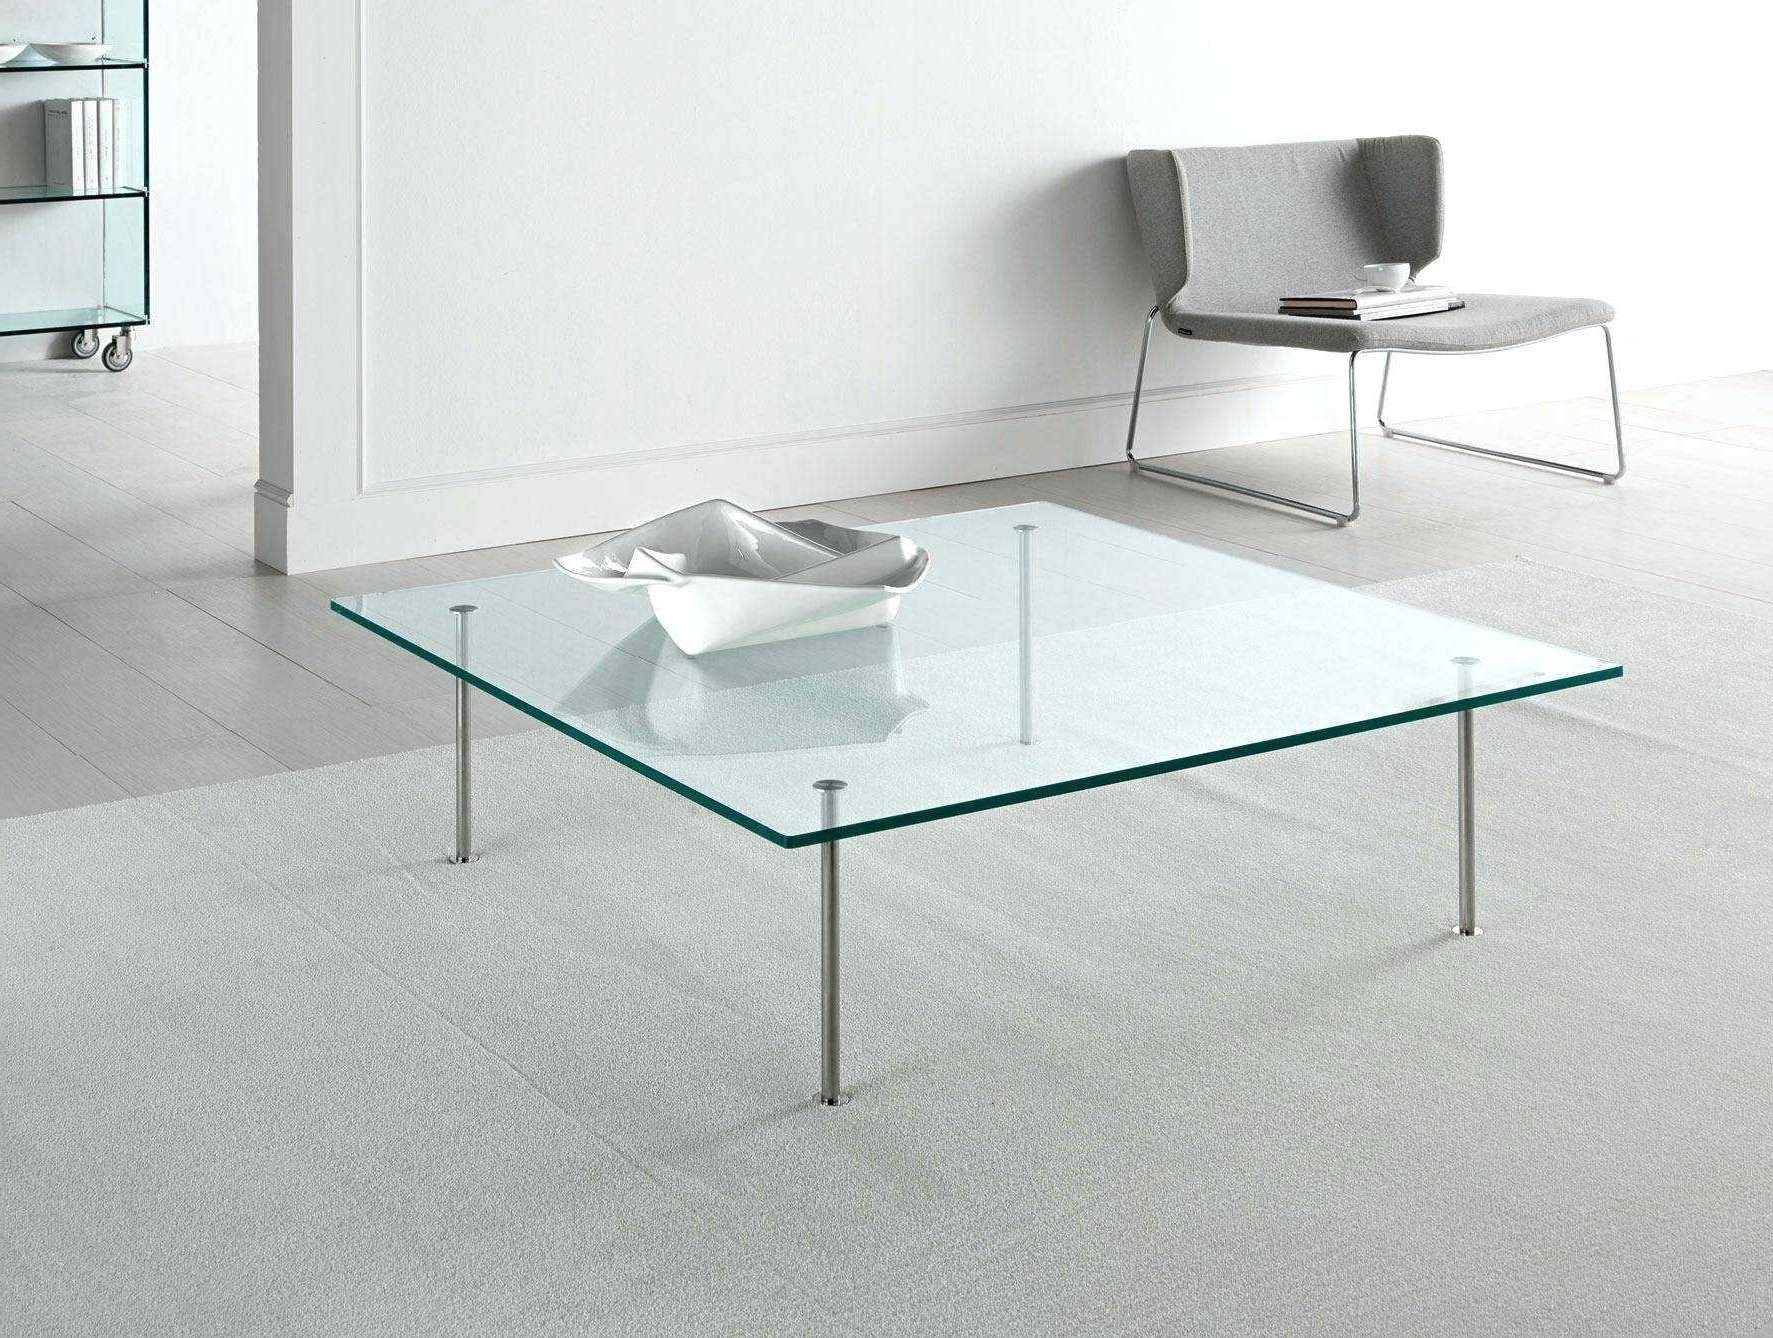 All Glass Coffee Tables – Coffee Tables Fashionable Inspiration Regarding Favorite All Glass Coffee Tables (Gallery 5 of 20)